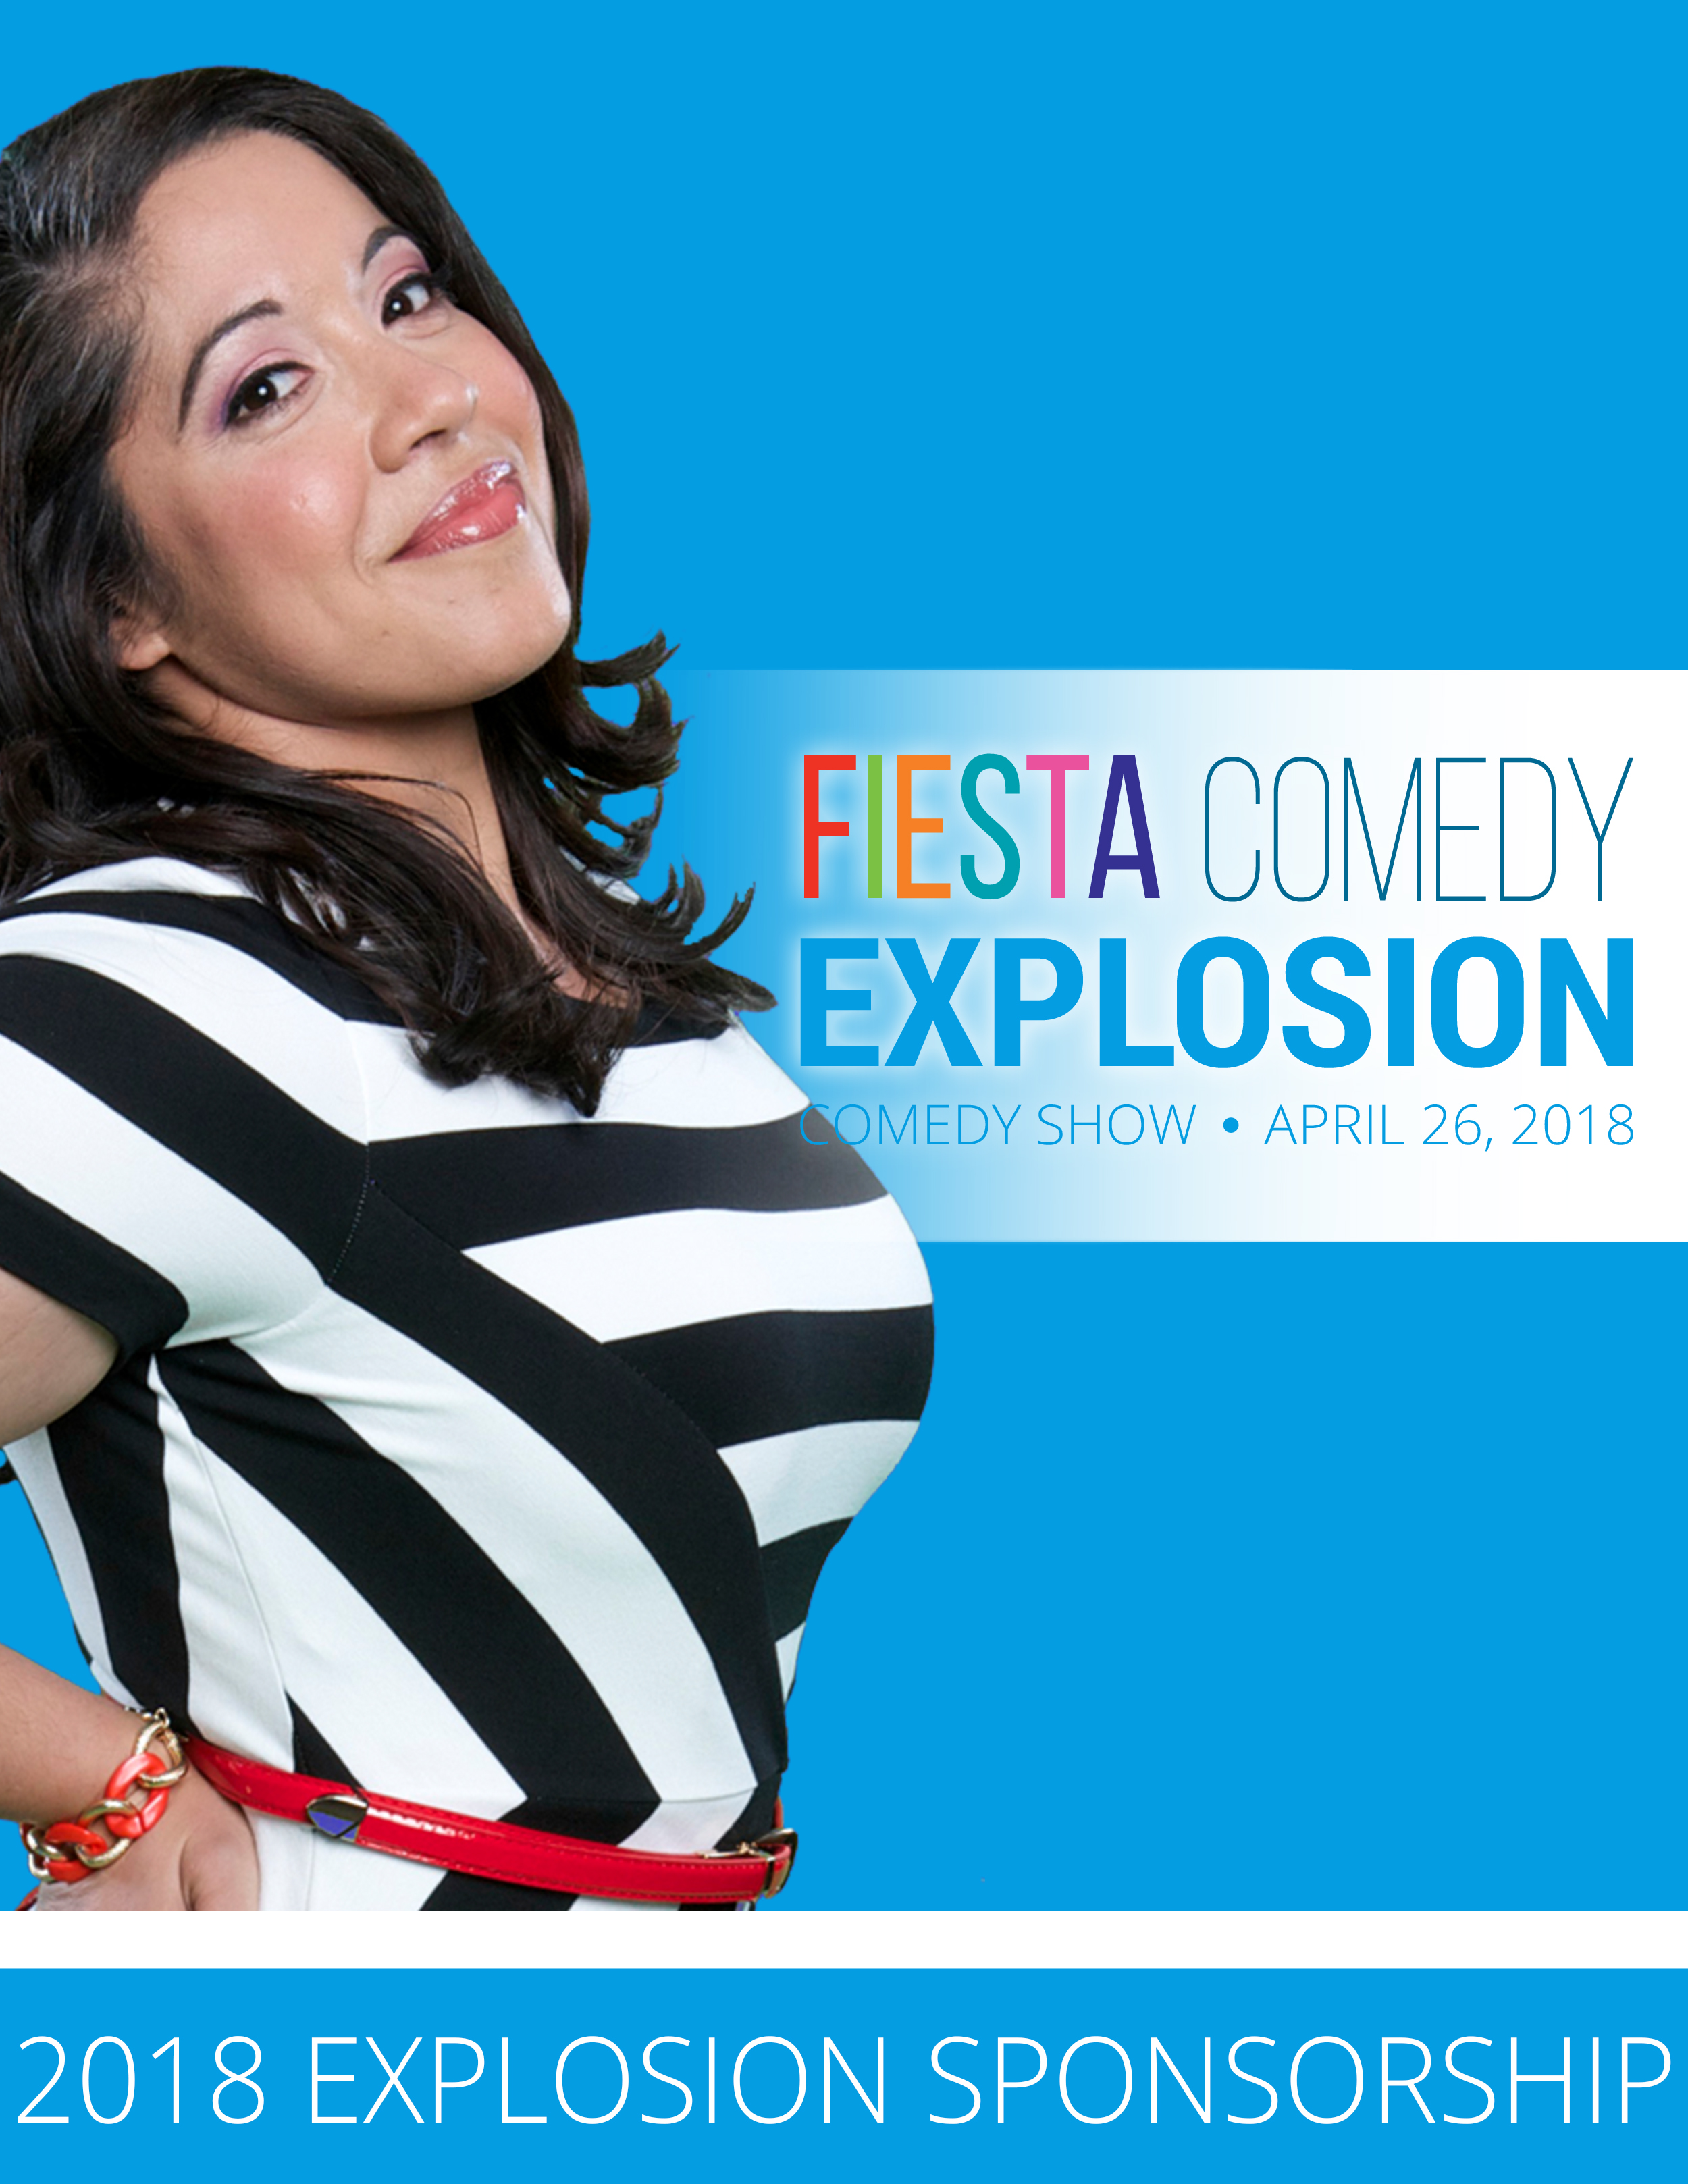 Explosion Sponsorship | Fiesta Comedy Explosion 2018 Sponsorship Package | Fiesta San Antonio | Official Priest Holmes Foundation Website | Priest Holmes Son | Priest Holmes Girlfriend | Priest Holmes Wife | Priest Holmes Engaged | Priest Holmes Family | Priest Holmes is Engaged